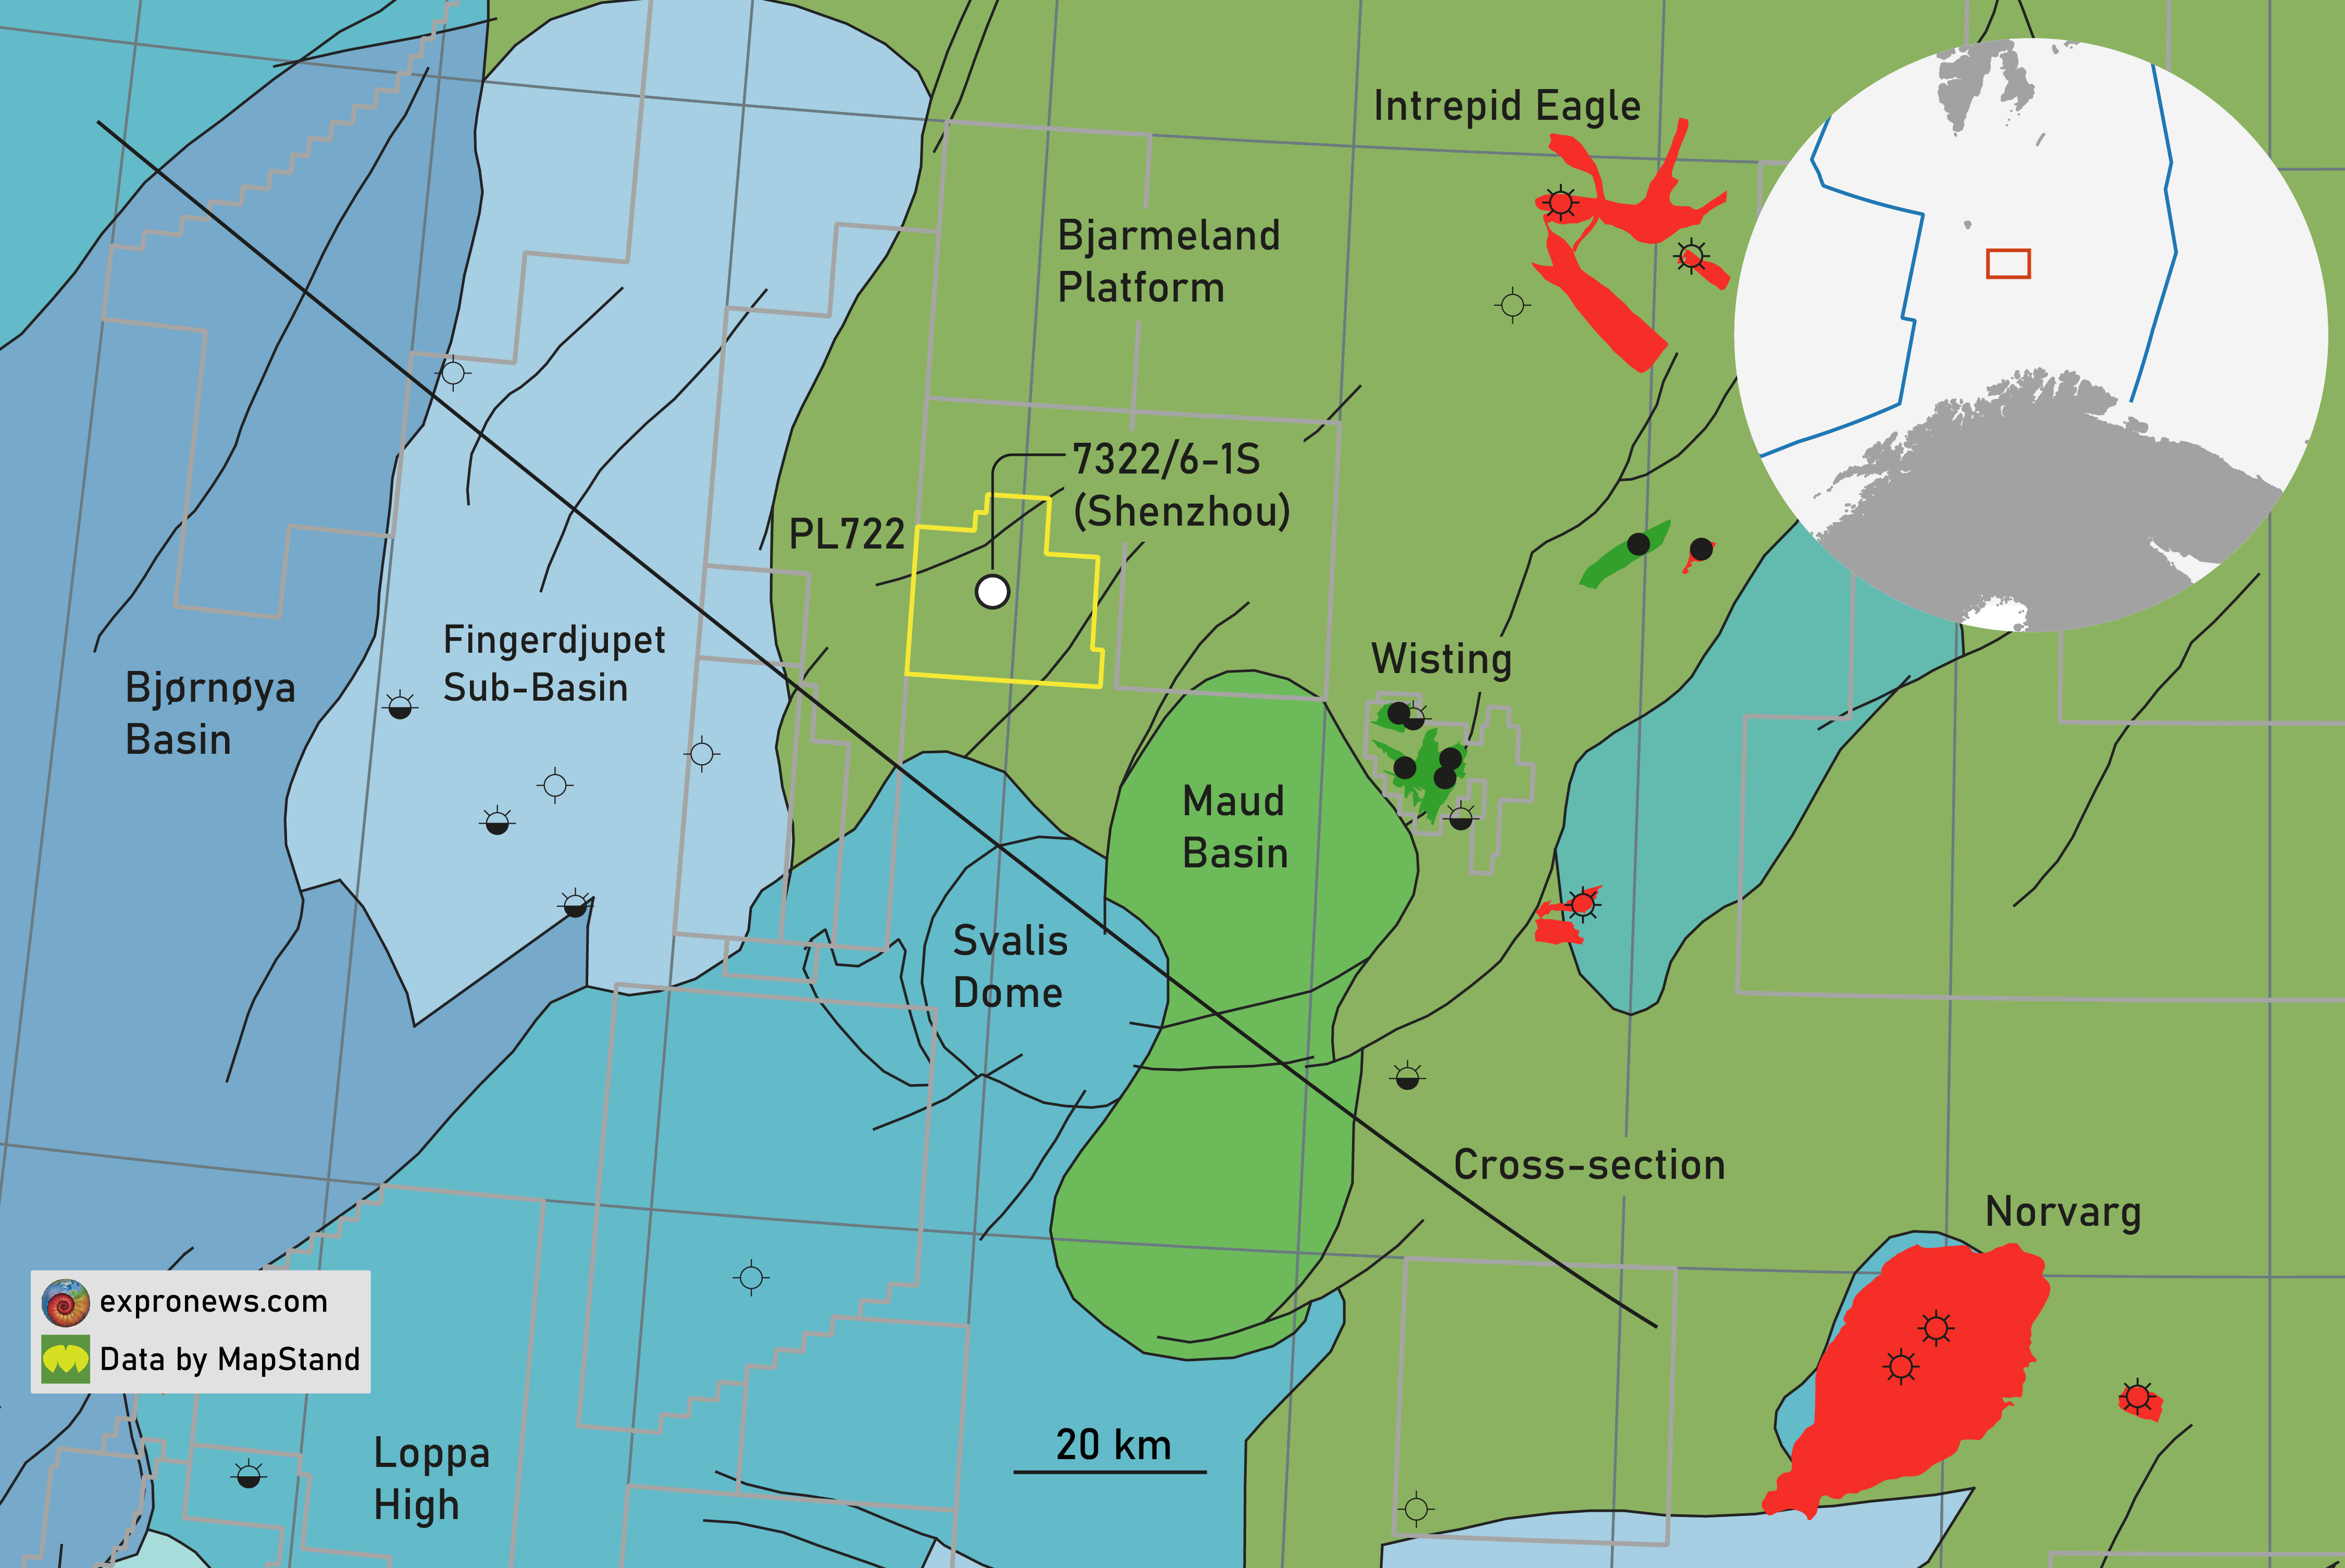 Another opportunity for the Barents Sea